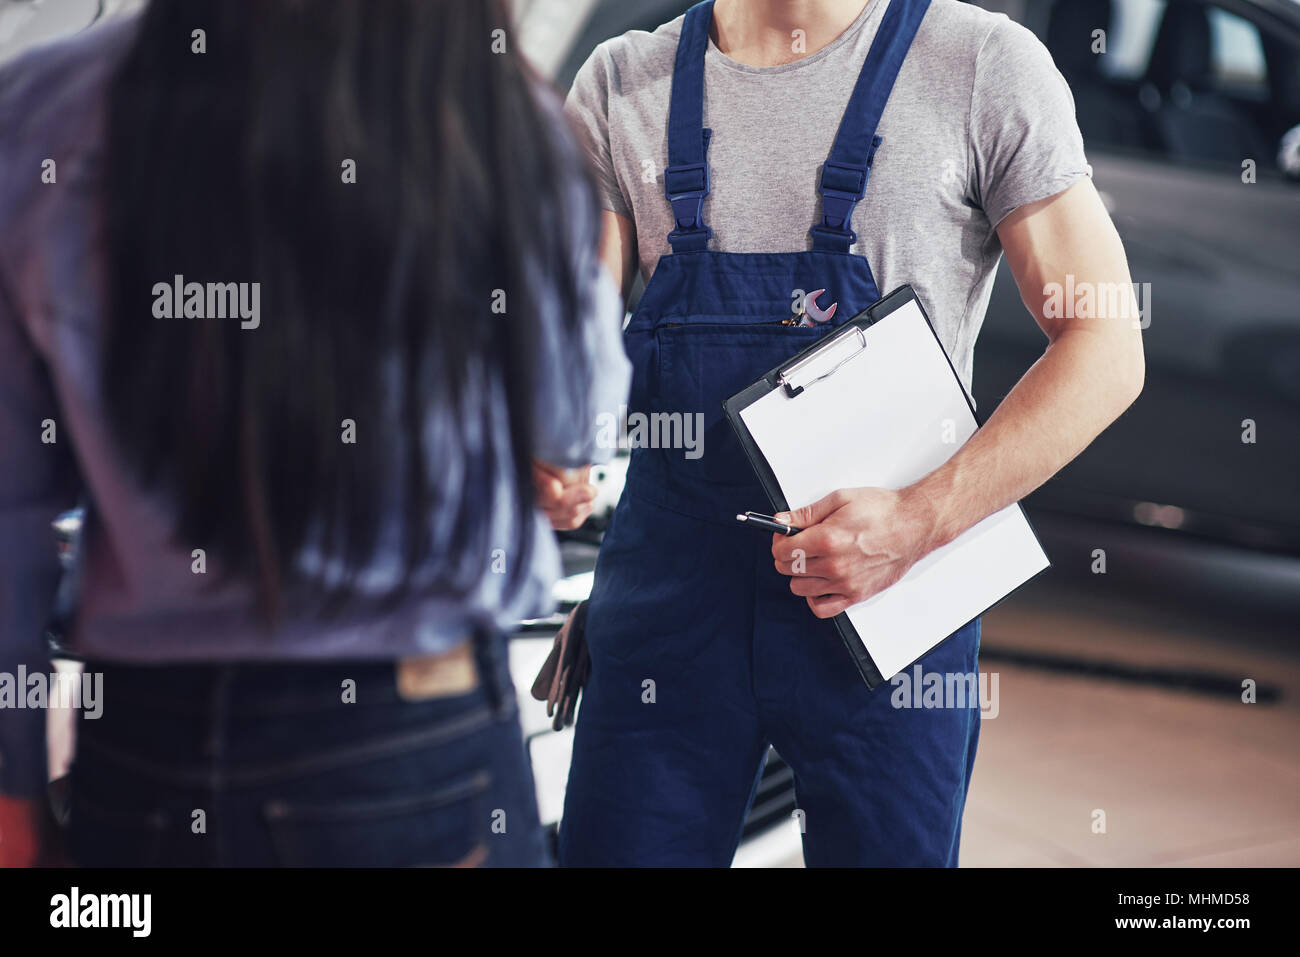 husband car mechanic and woman customer make an agreement on the repair of the car - Stock Image